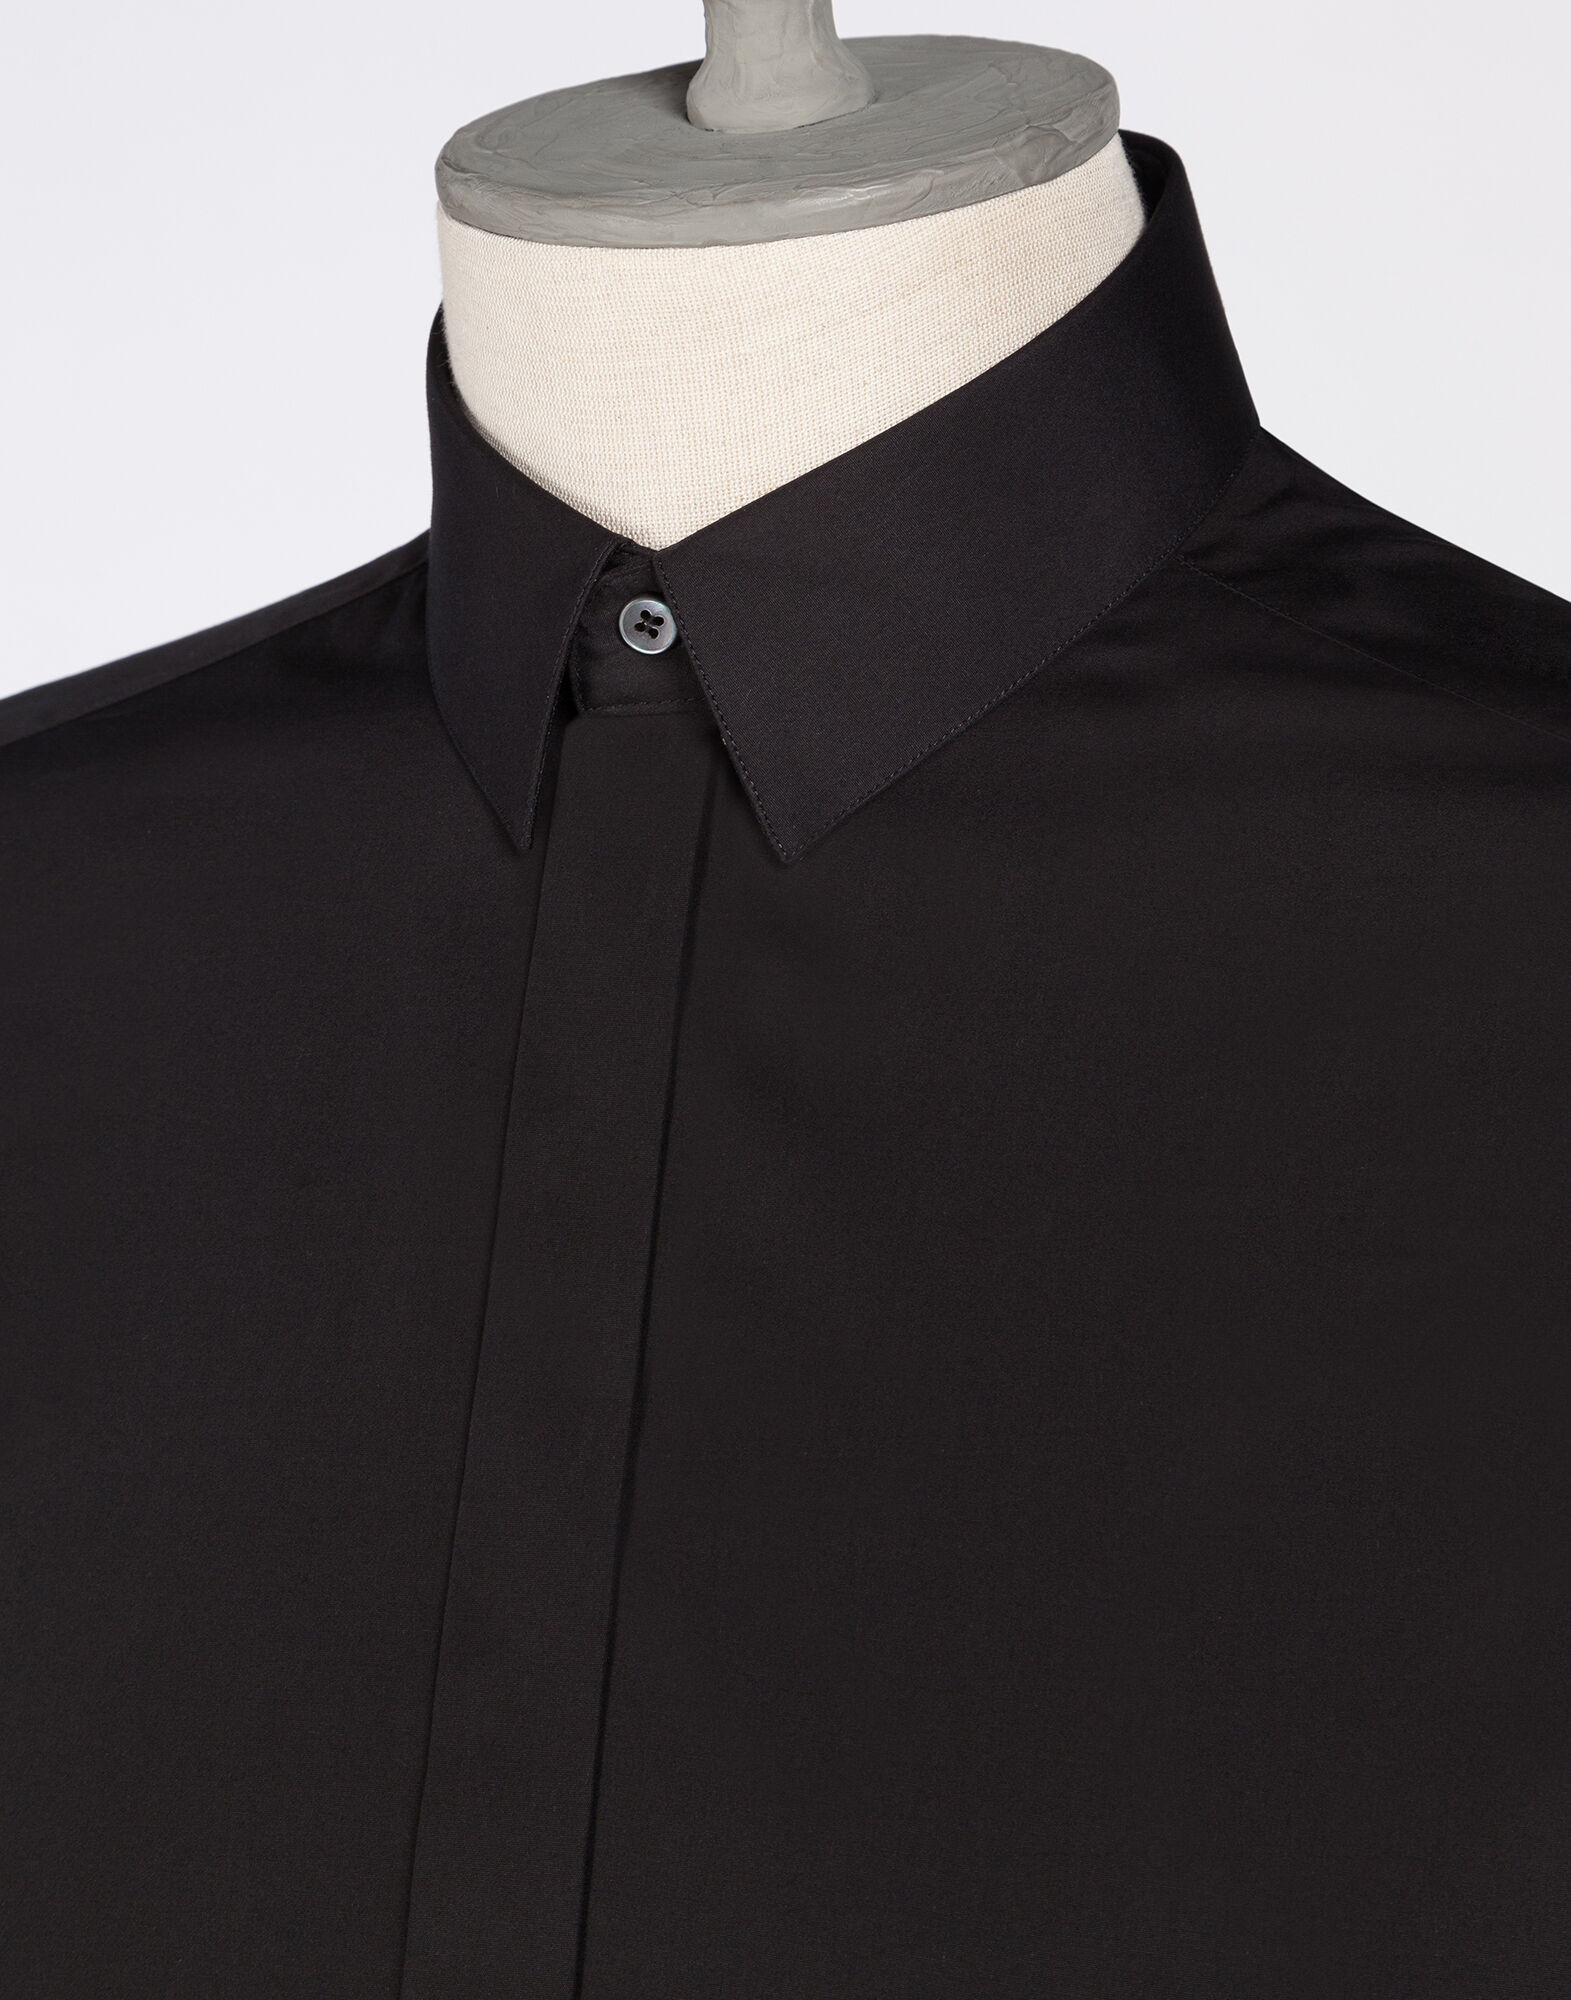 SHORT SLEEVE POPLIN COTTON SHIRT